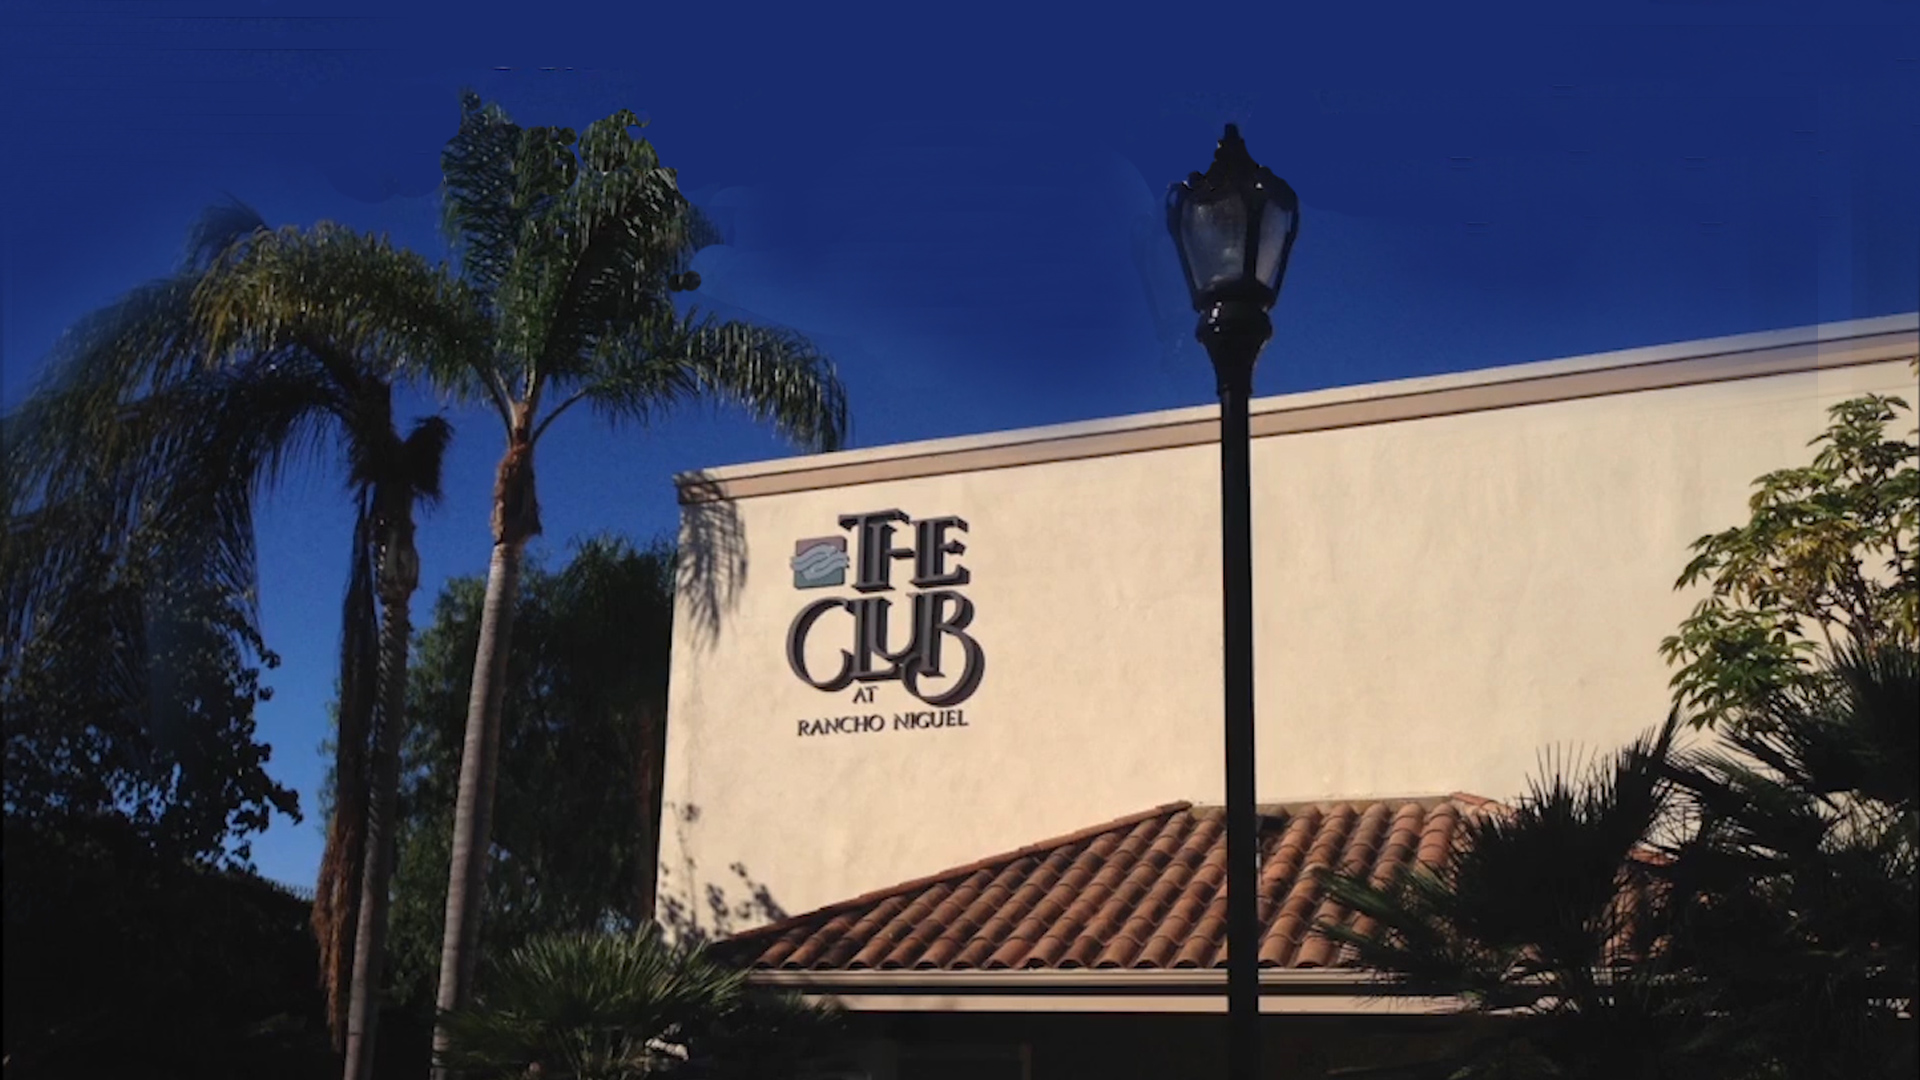 The Club at Rancho Niguel